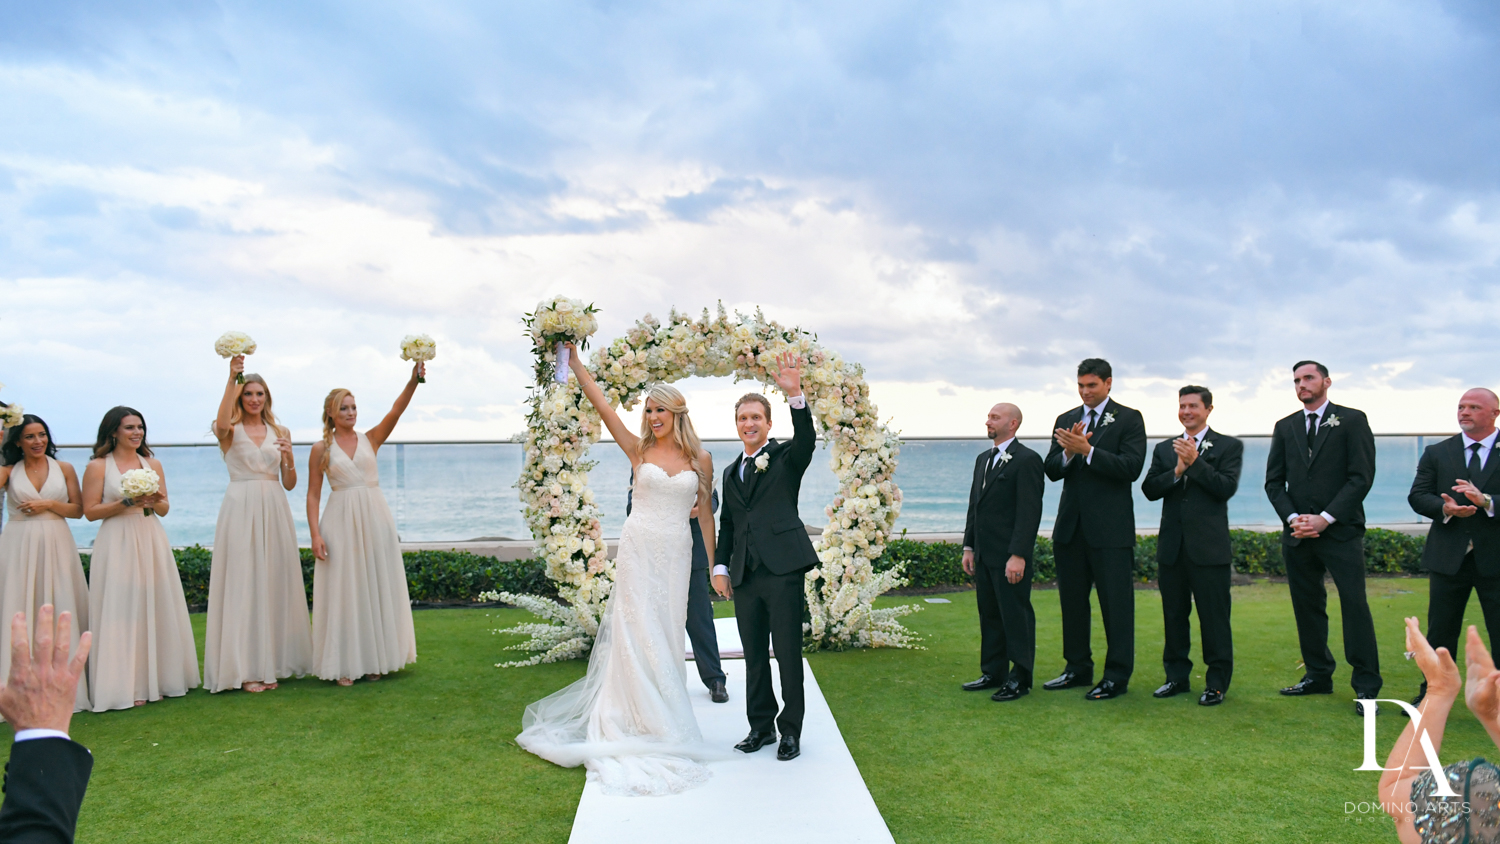 beach wedding at Extravagant Wedding at The Breakers Palm Beach by Domino Arts Photography